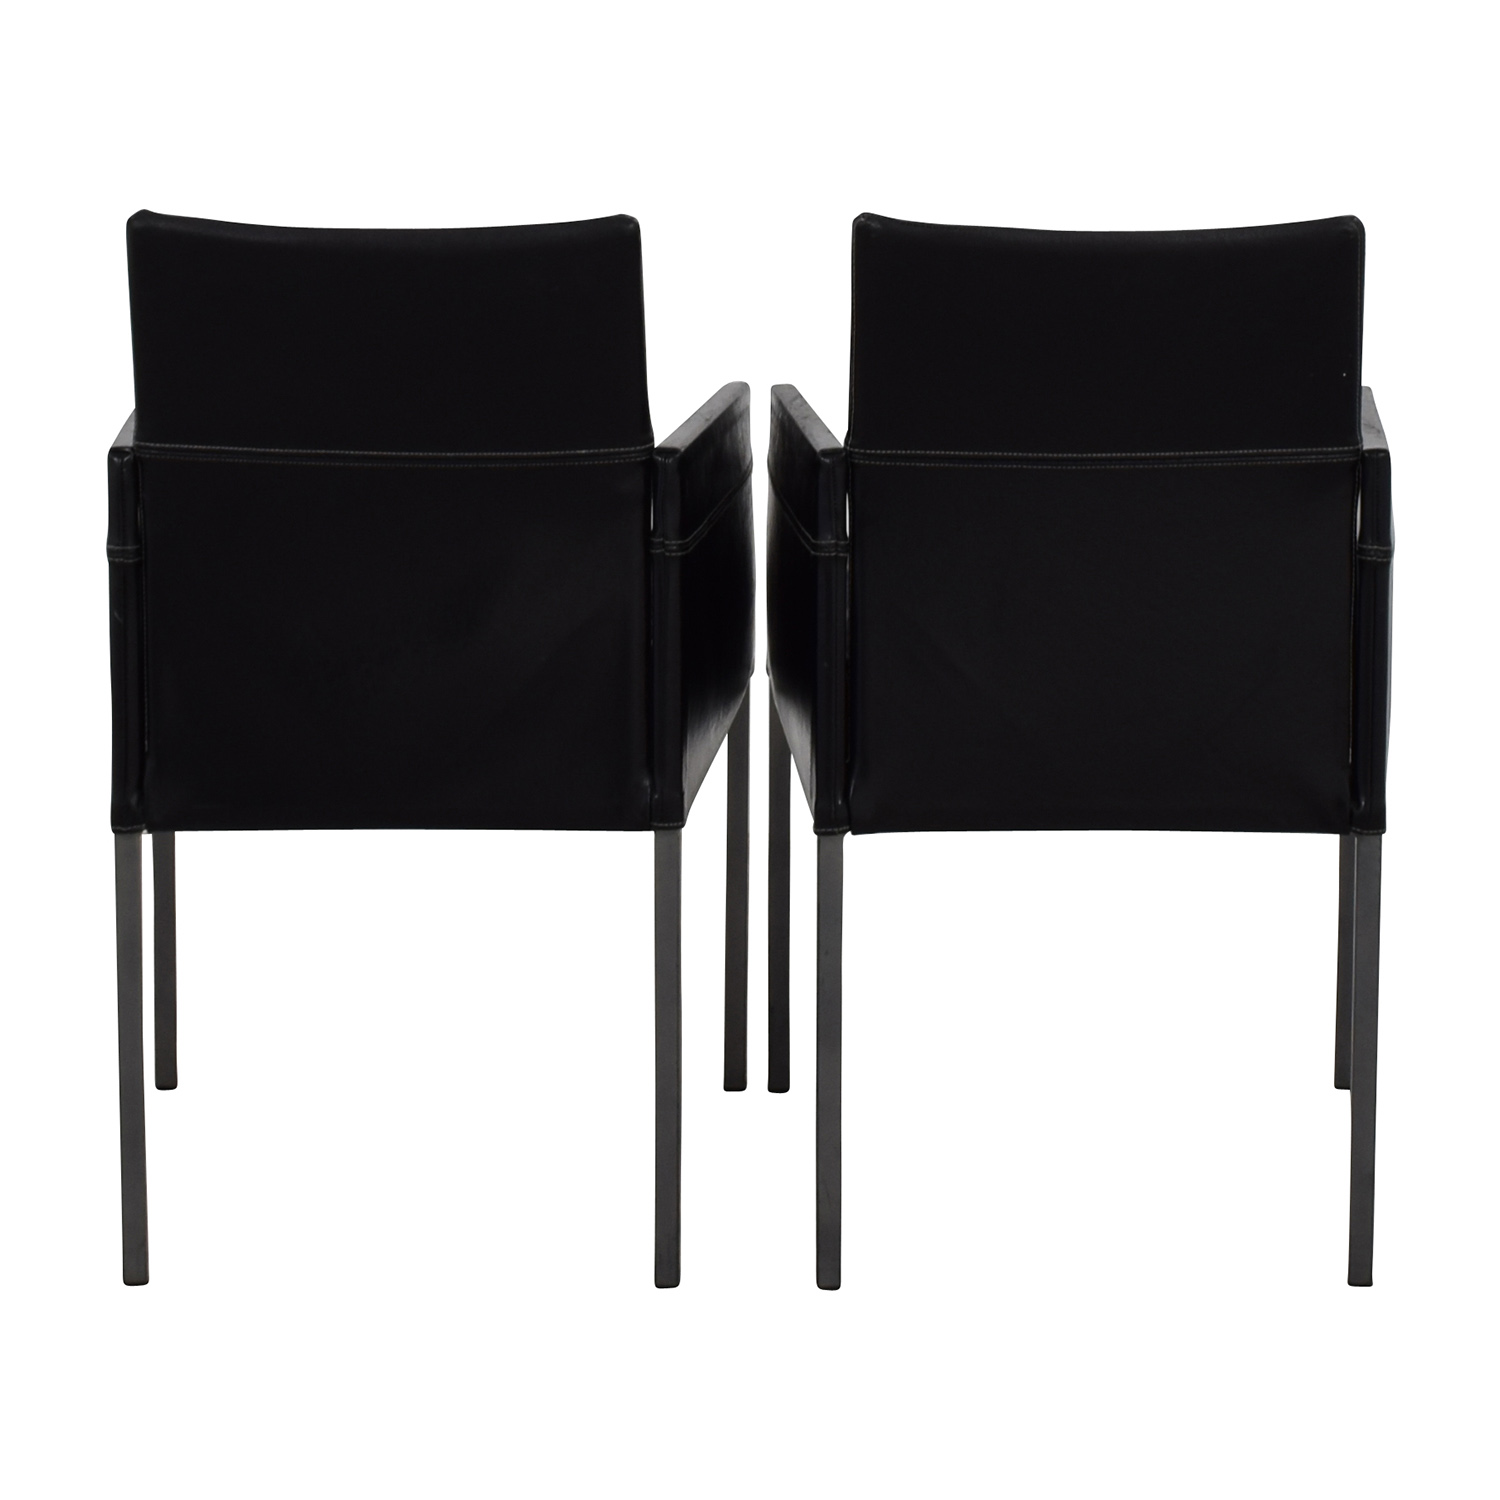 Design Within Reach Design Within Reach Black Leather Chairs discount